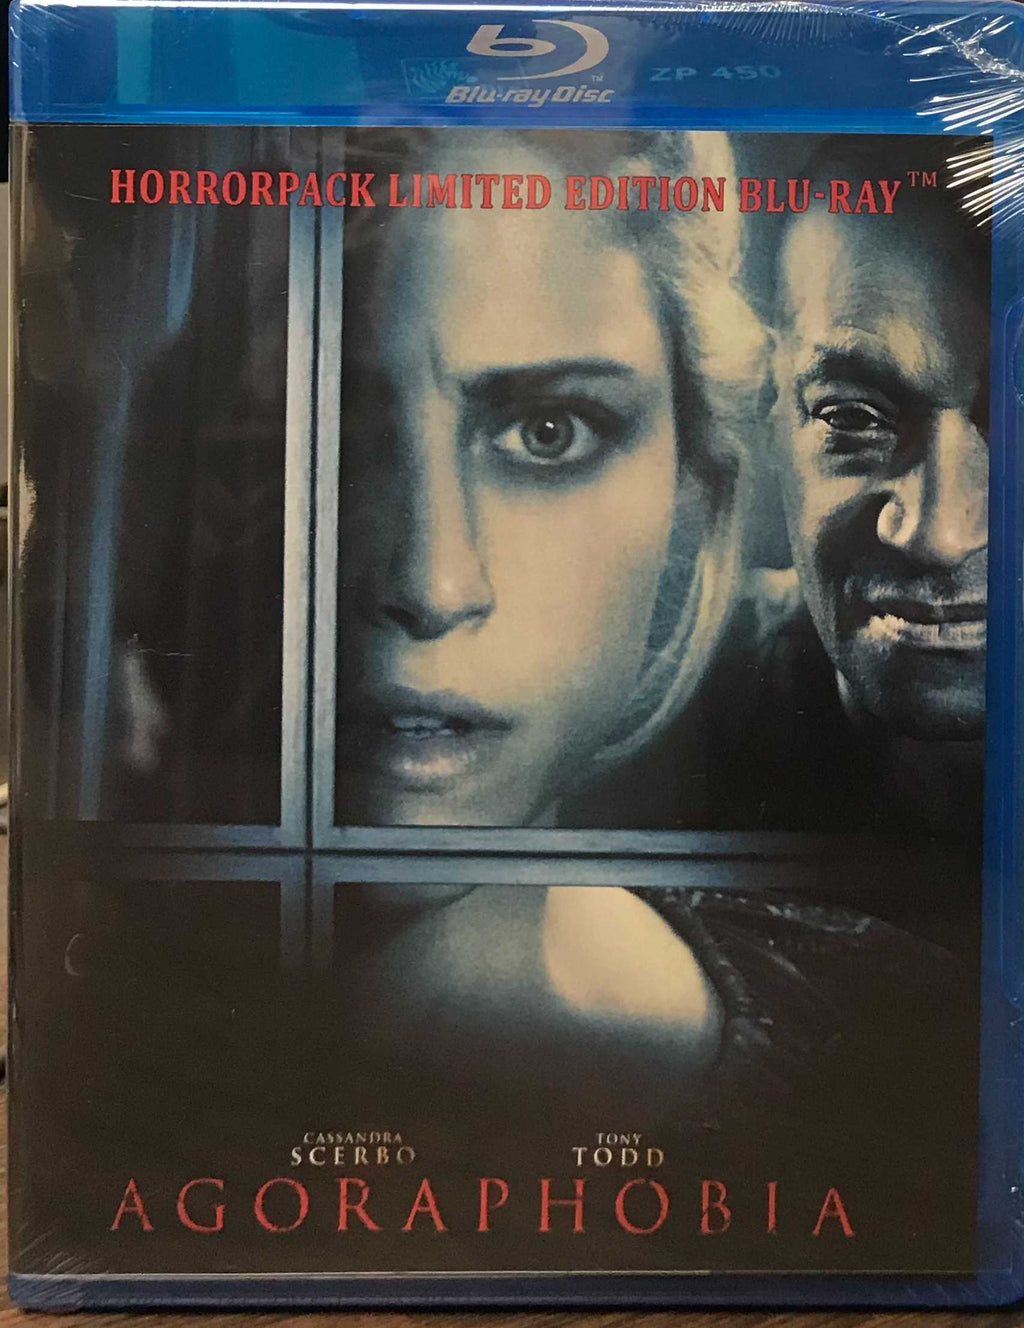 Agoraphobia - HorrorPack SIGNED Limited Edition Blu-ray #50